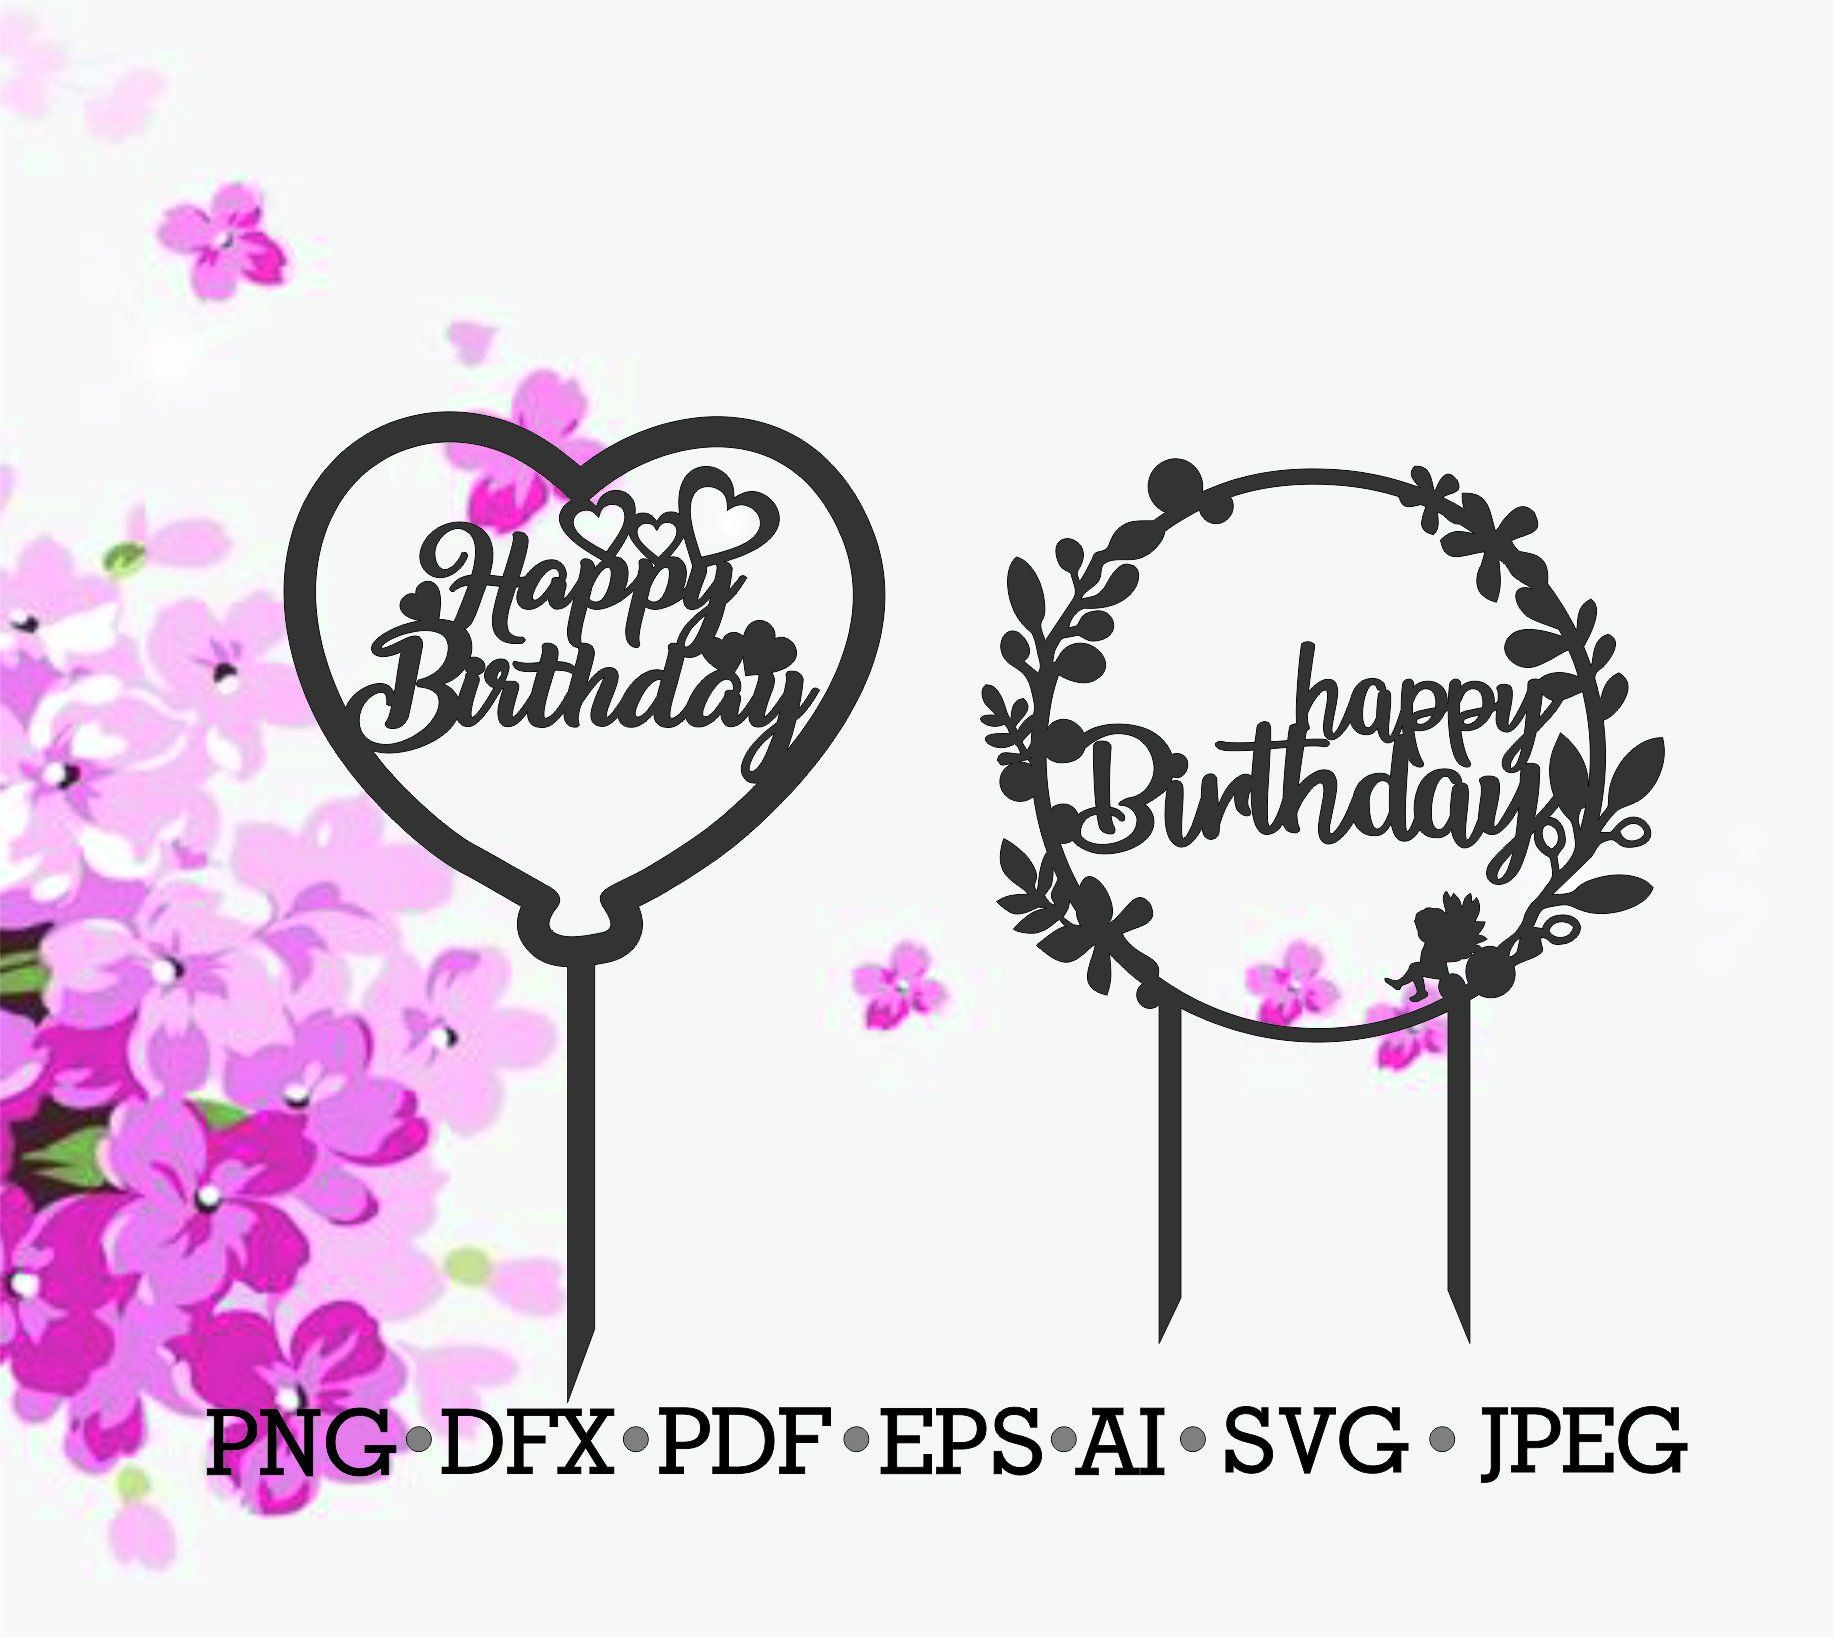 Cake Topper Svg Happy Birthday Svg Cake Decorations Svg Etsy Birthday Cake Toppers Cake Toppers Topper